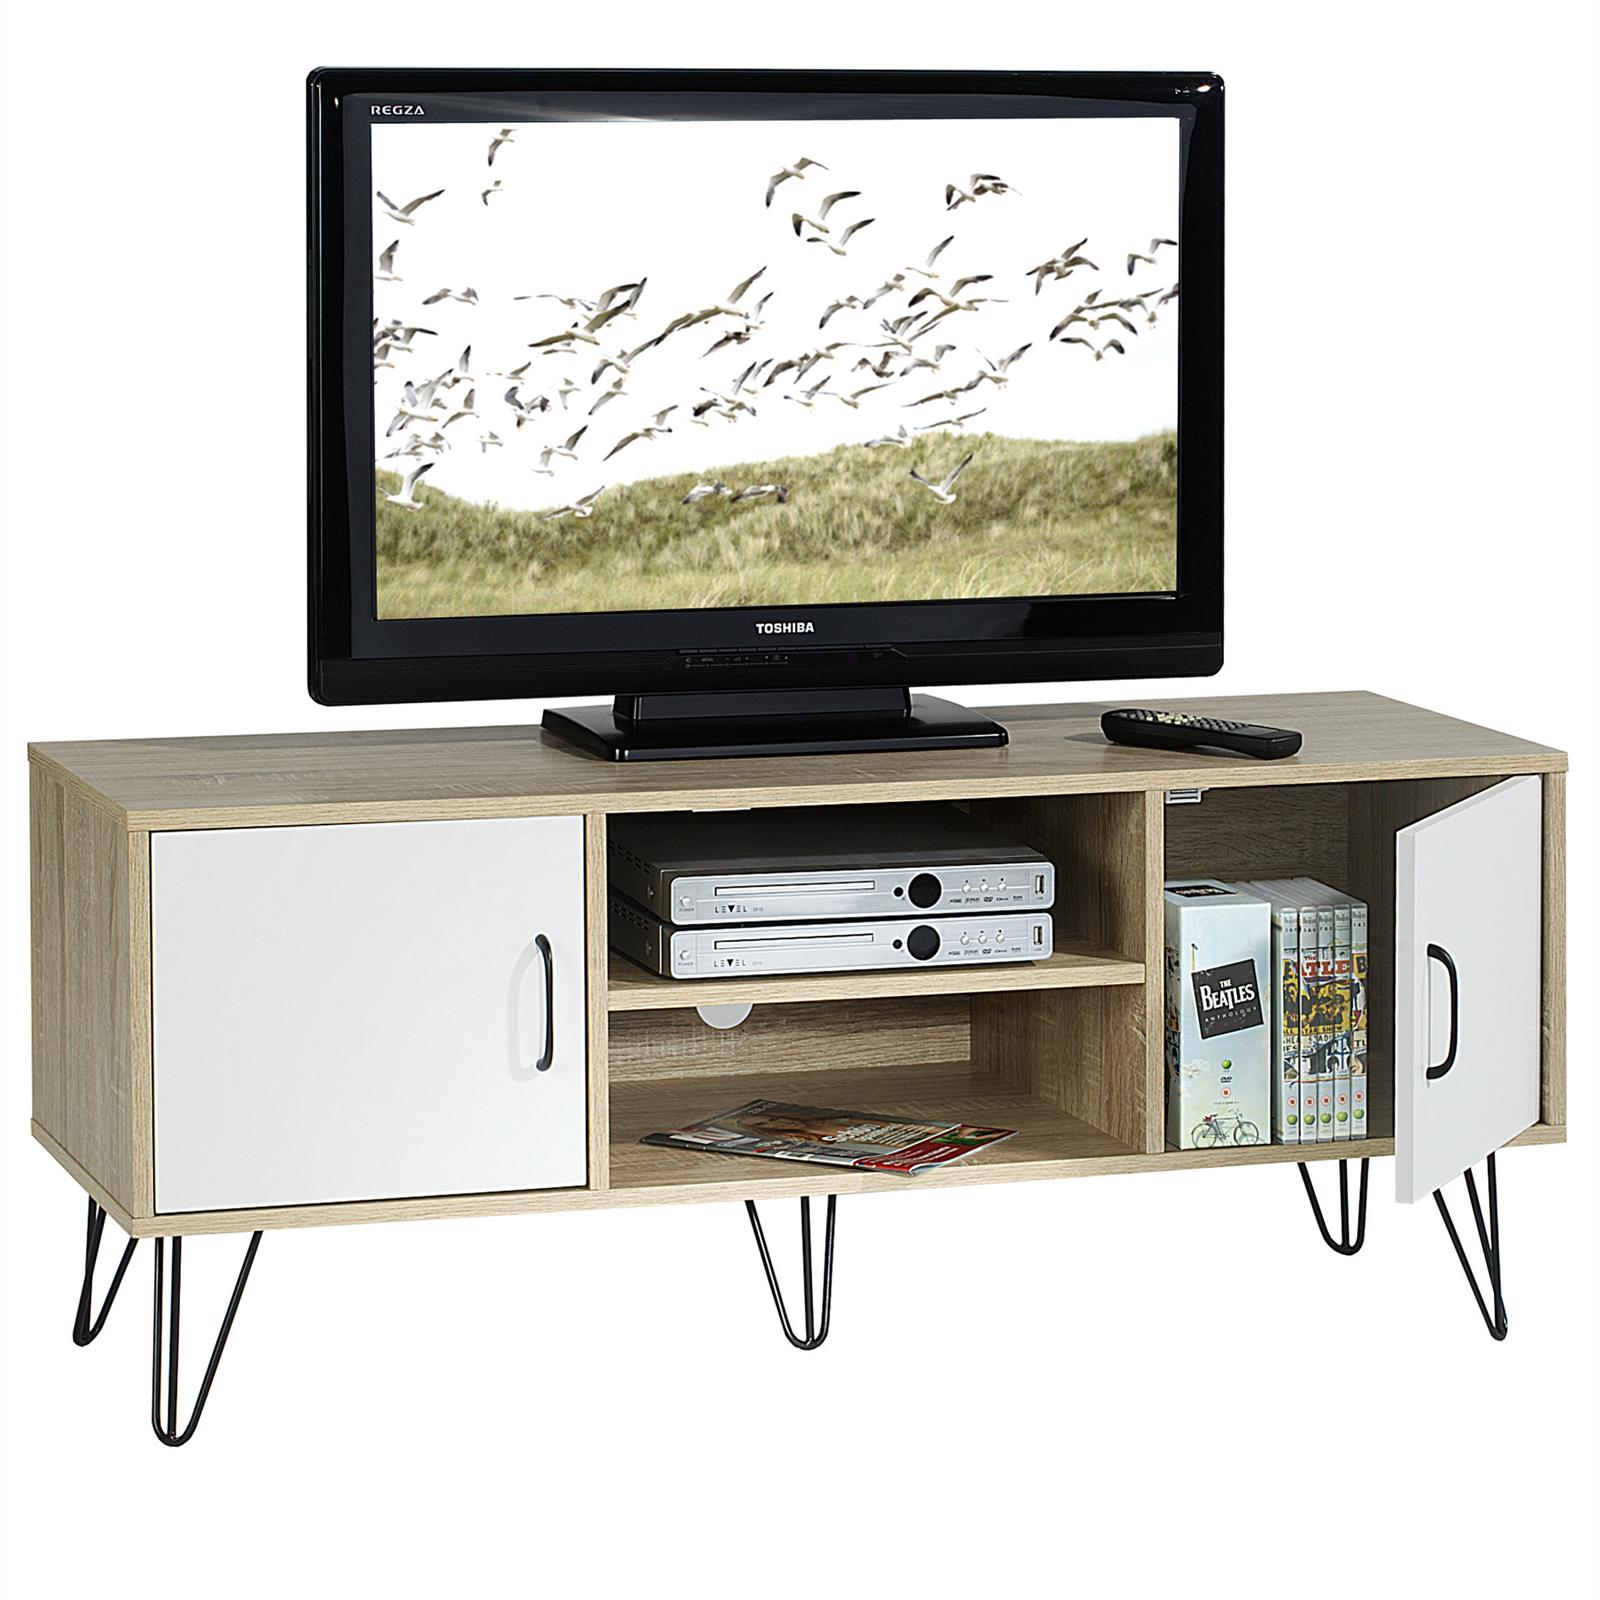 tv lowboard rack hifi m bel dvd fernsehtisch kommode wohnzimmer in 2 farben ebay. Black Bedroom Furniture Sets. Home Design Ideas